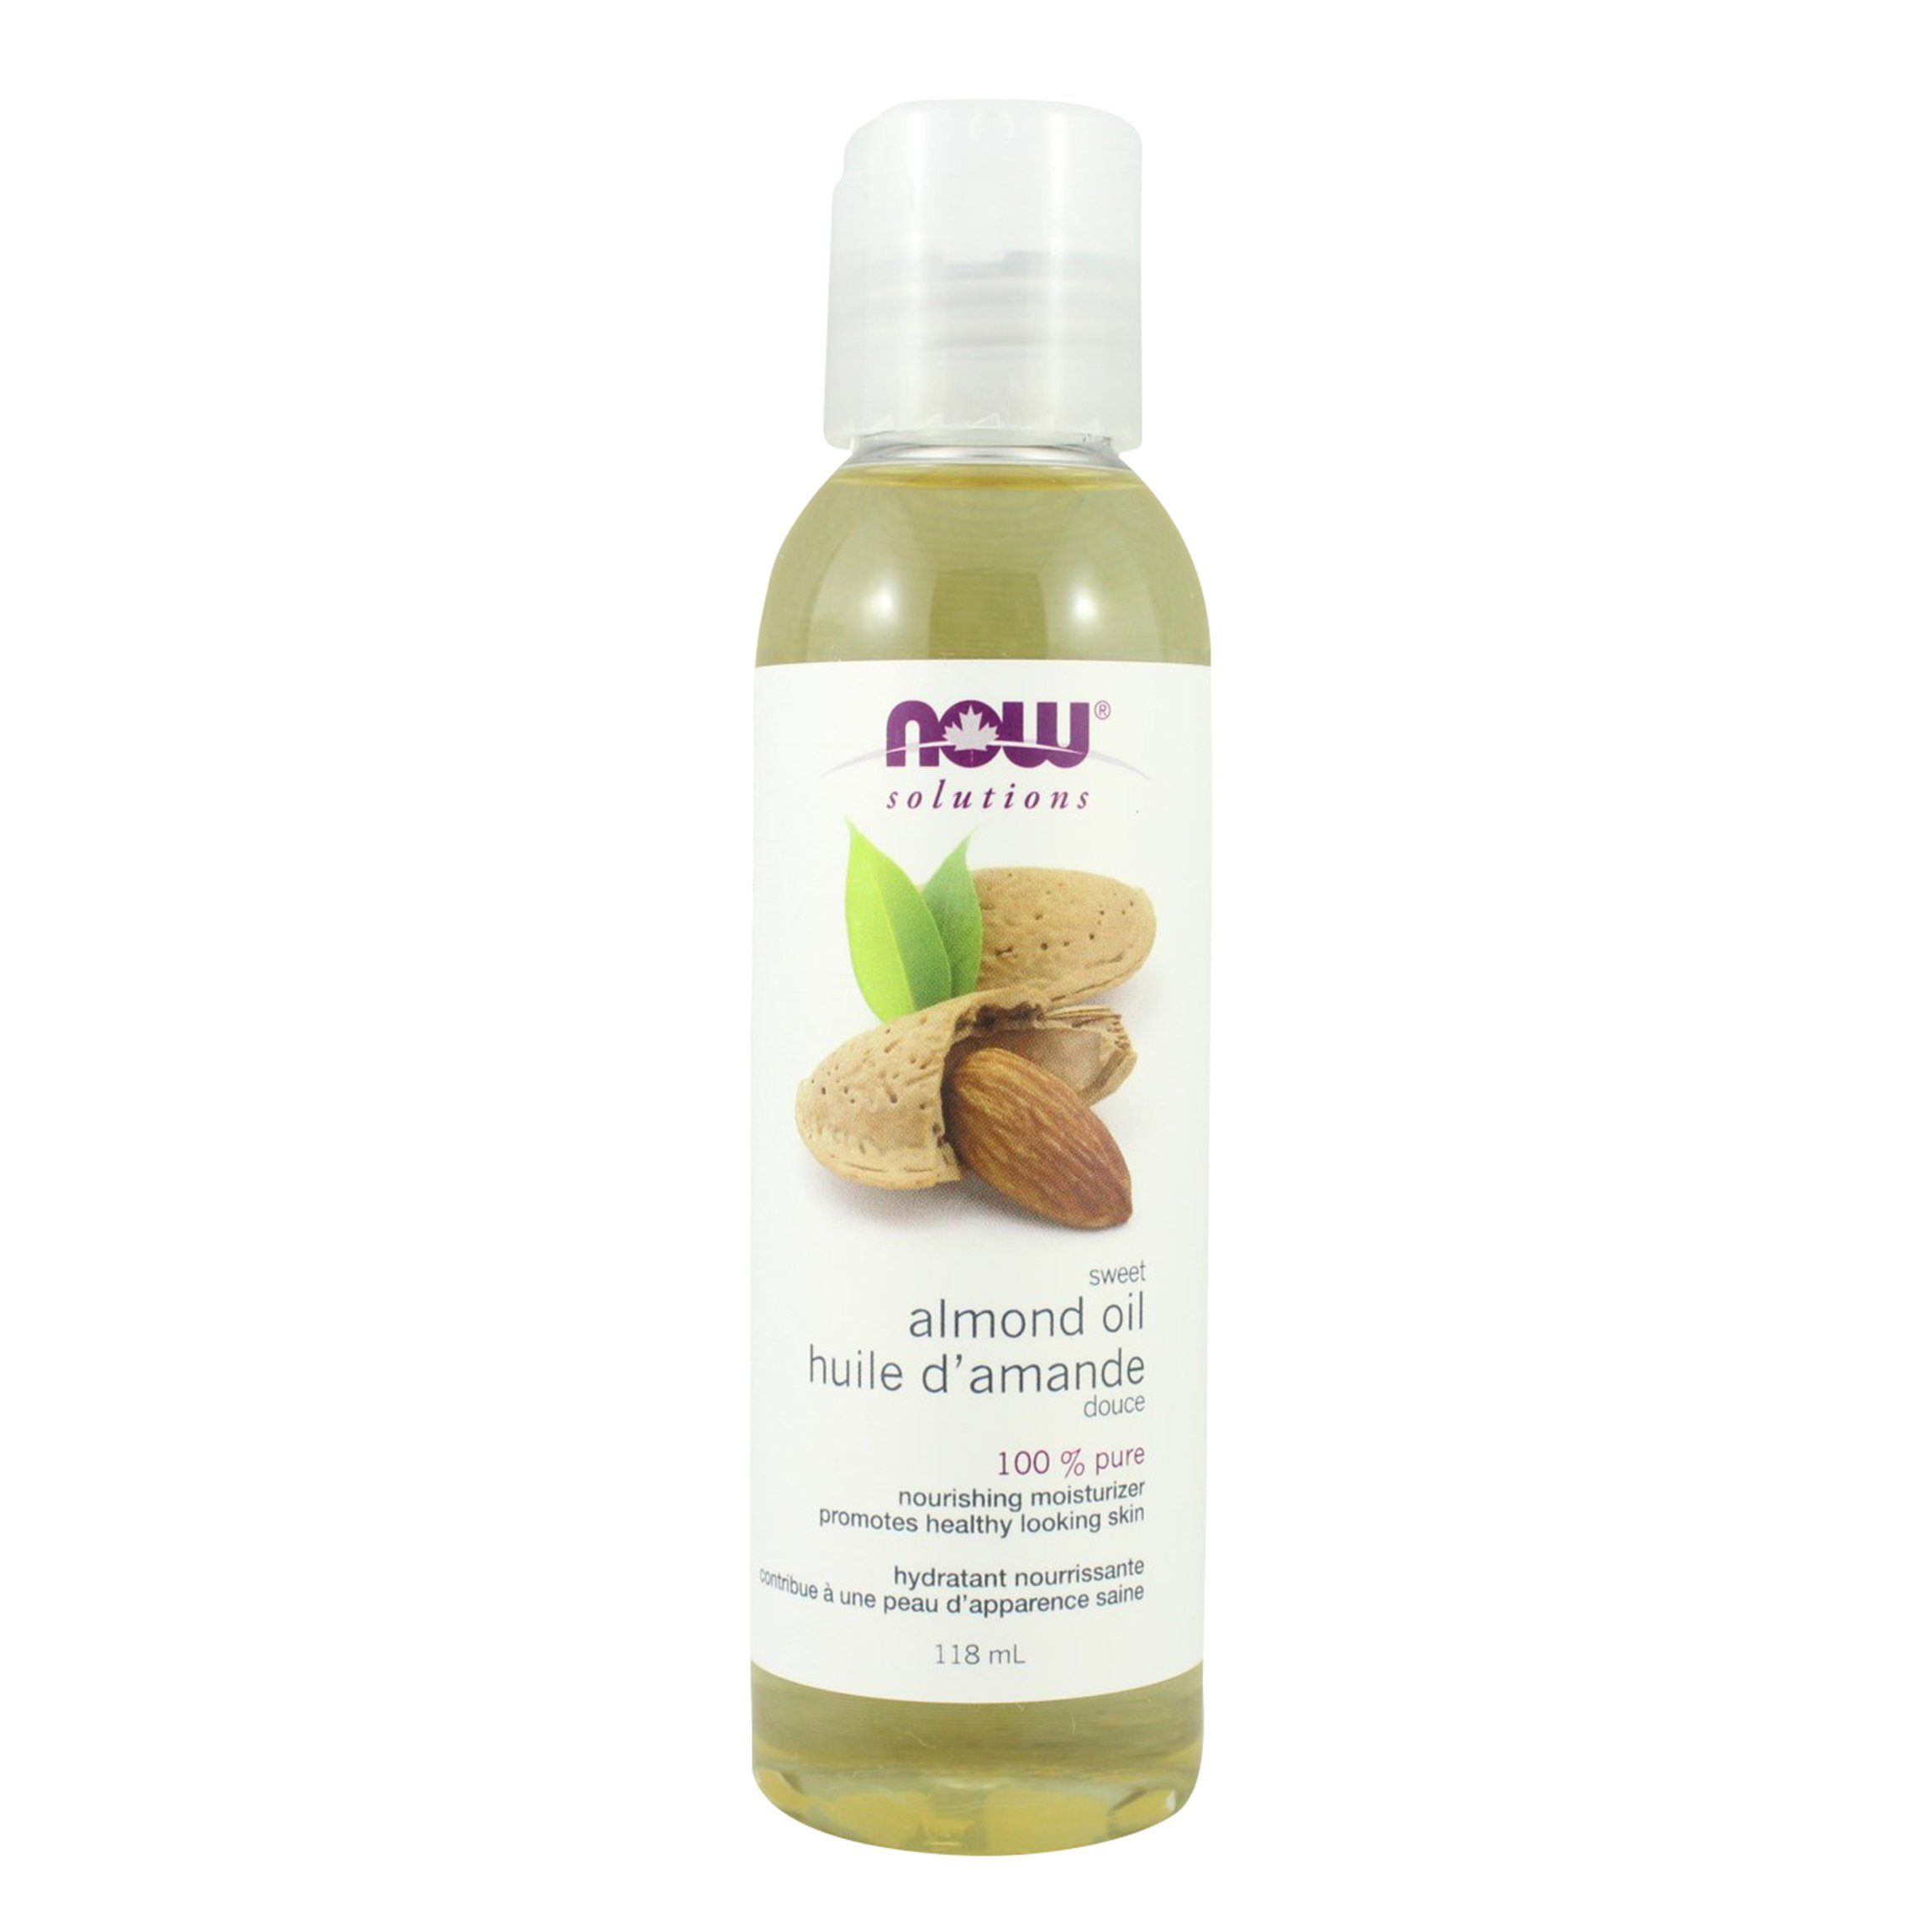 NOW Almond Oil Sweet Expellerpress 118ml by NOW